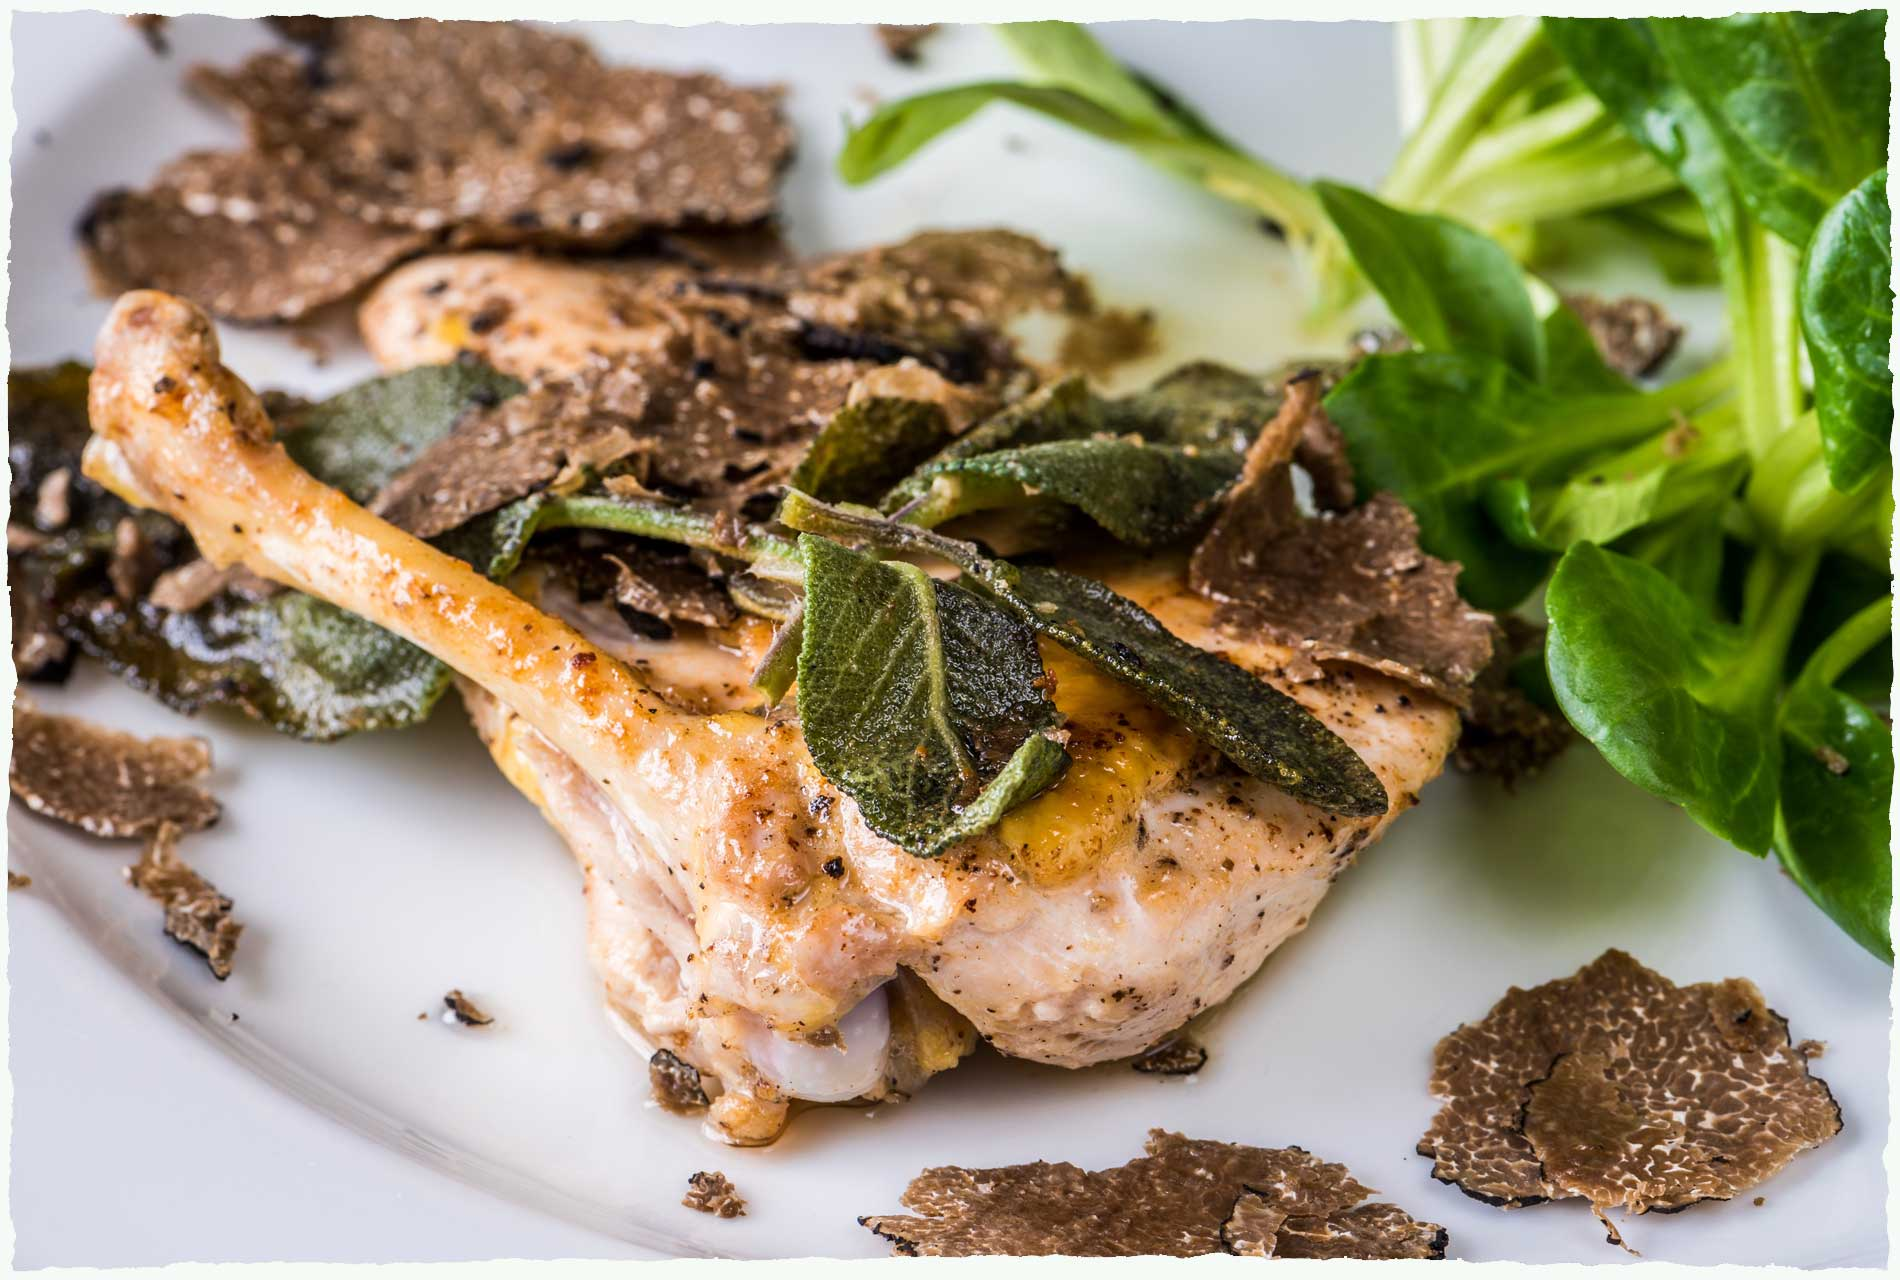 Guinea Fowl, nettles and truffles